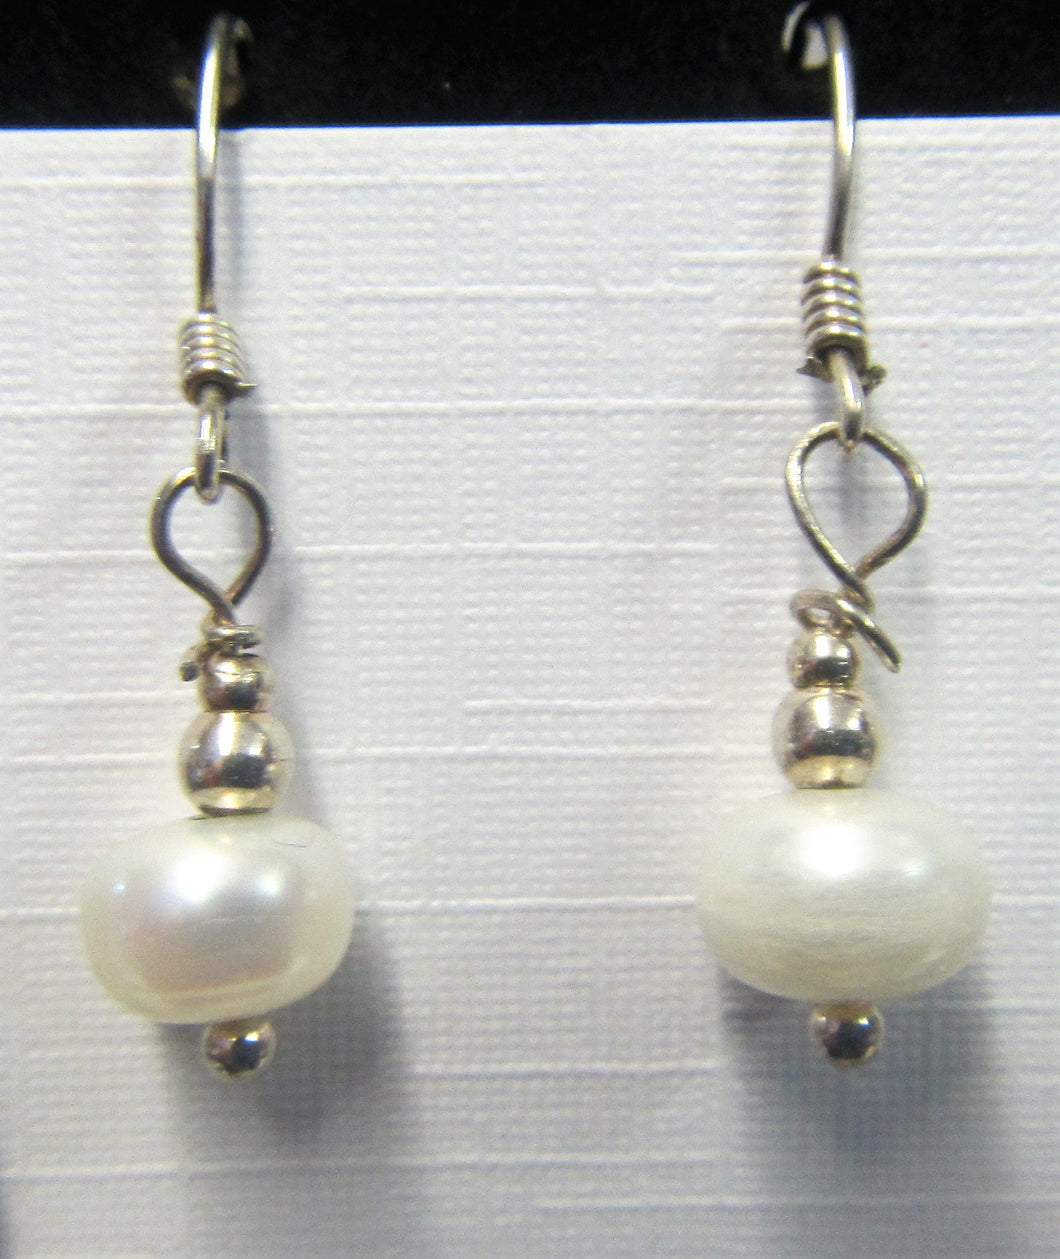 Handcrafted sterling silver pearl earrings on Sterling silver hooks